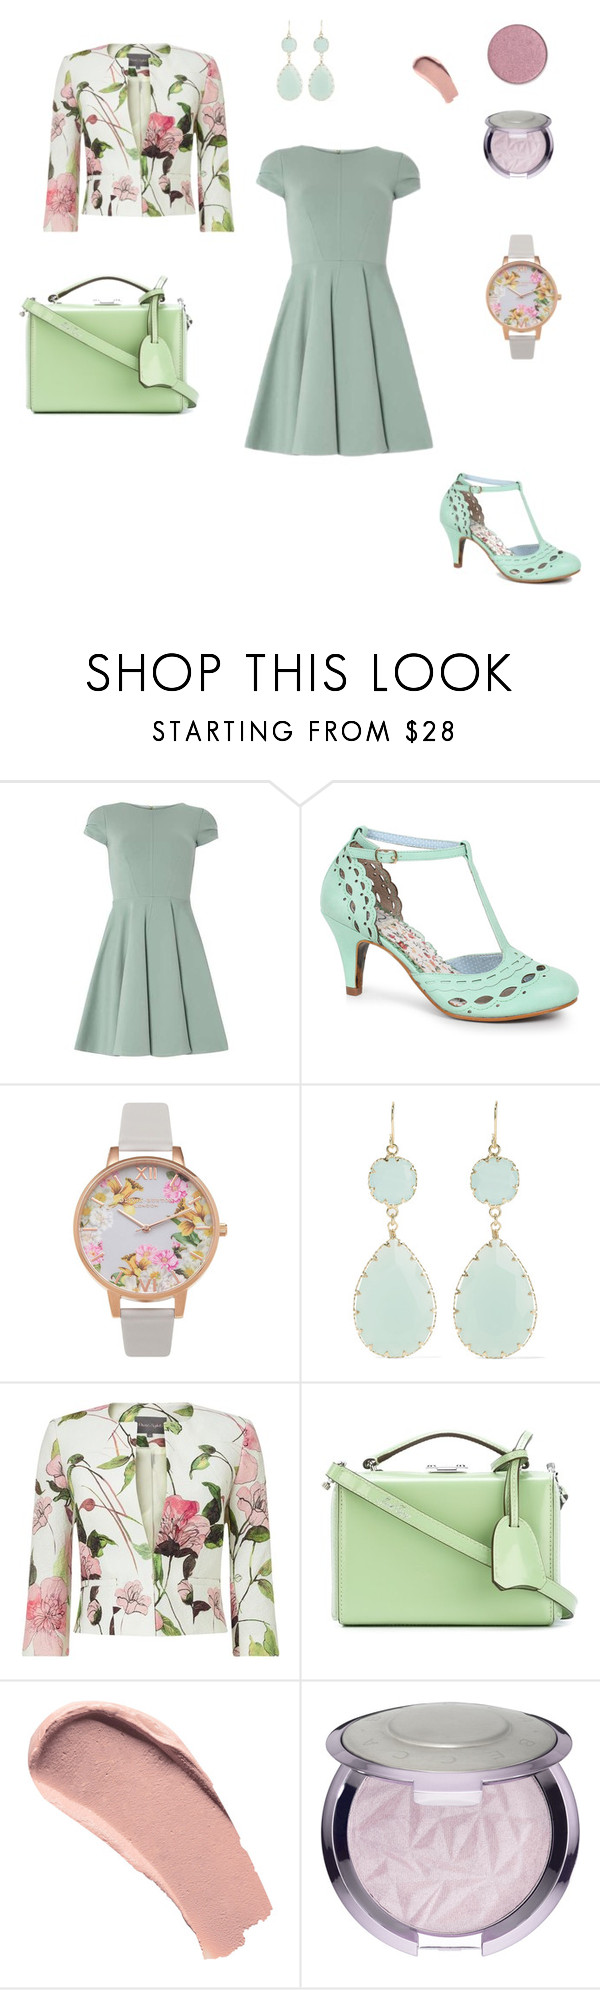 """""""Mint is Everything Dressy Outfit"""" by katieized ❤ liked on Polyvore featuring Dorothy Perkins, Bettie Page, Olivia Burton, Kenneth Jay Lane, Phase Eight, Mark Cross and Burberry"""